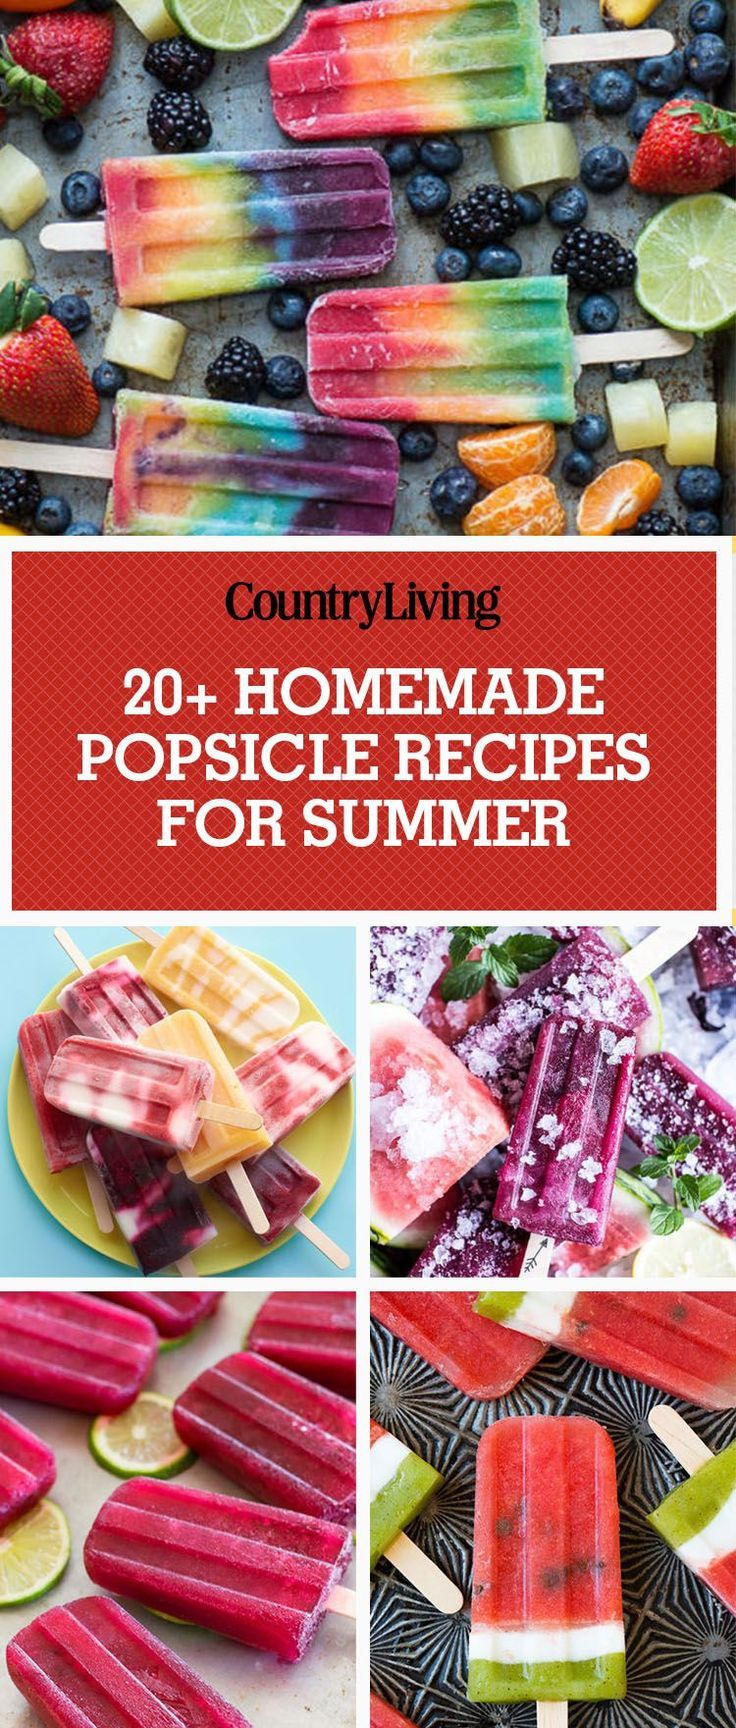 40 Homemade Popsicle Recipes for Your Coolest Summer Yet